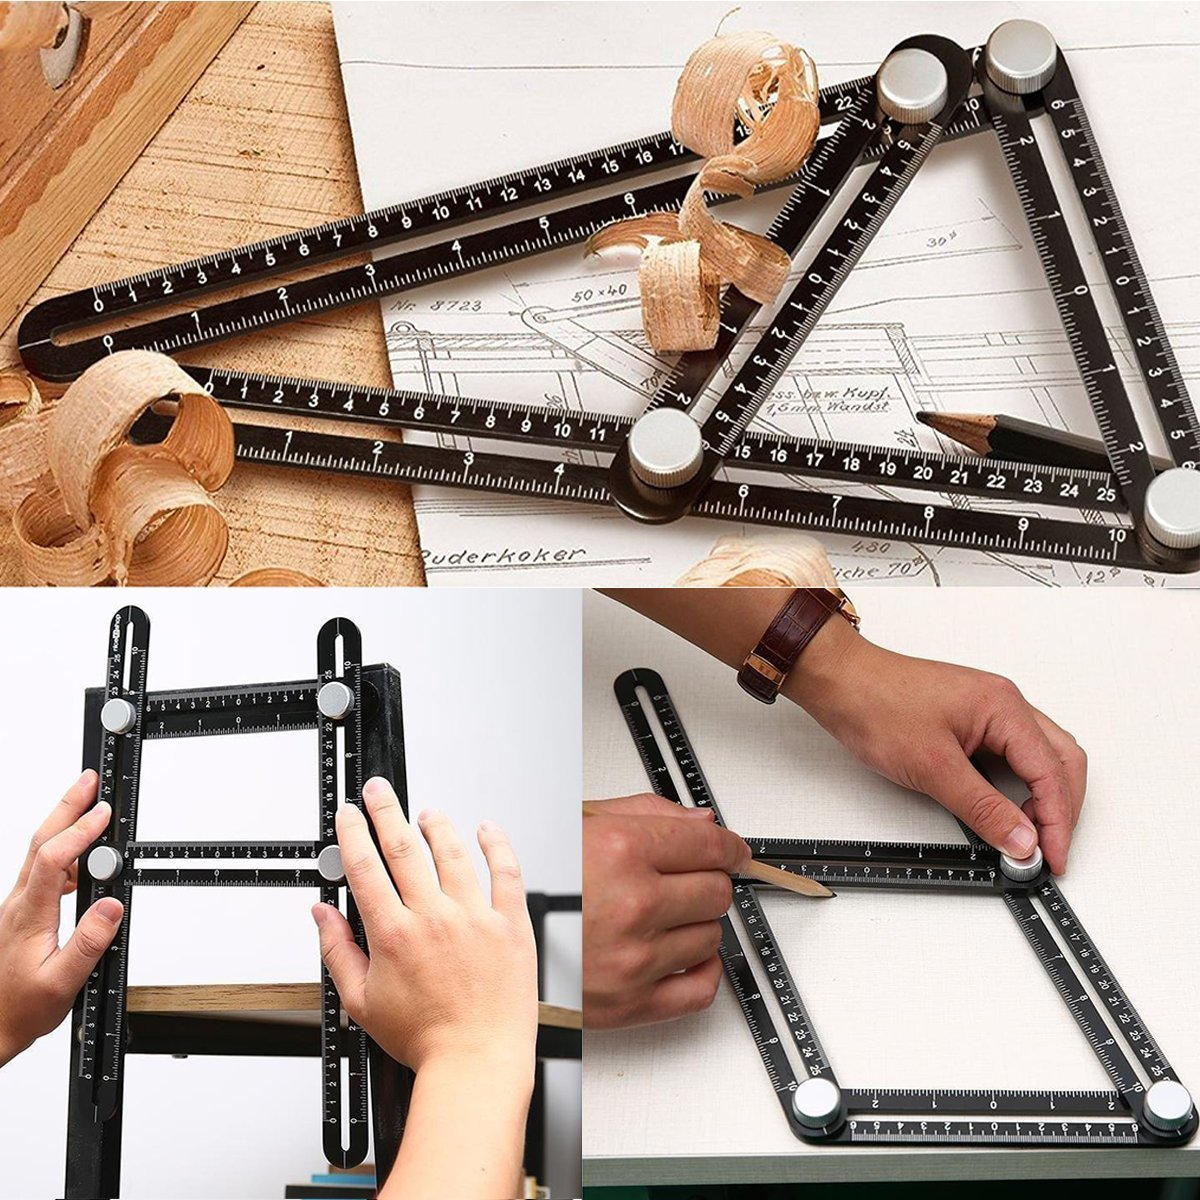 Black Precise Angleizer Template Tool paving cutting Premium Aluminum Alloy Easy Angle Ruler carpentry tiling slating and more Multi angle measuring ruler for DIY projects flooring